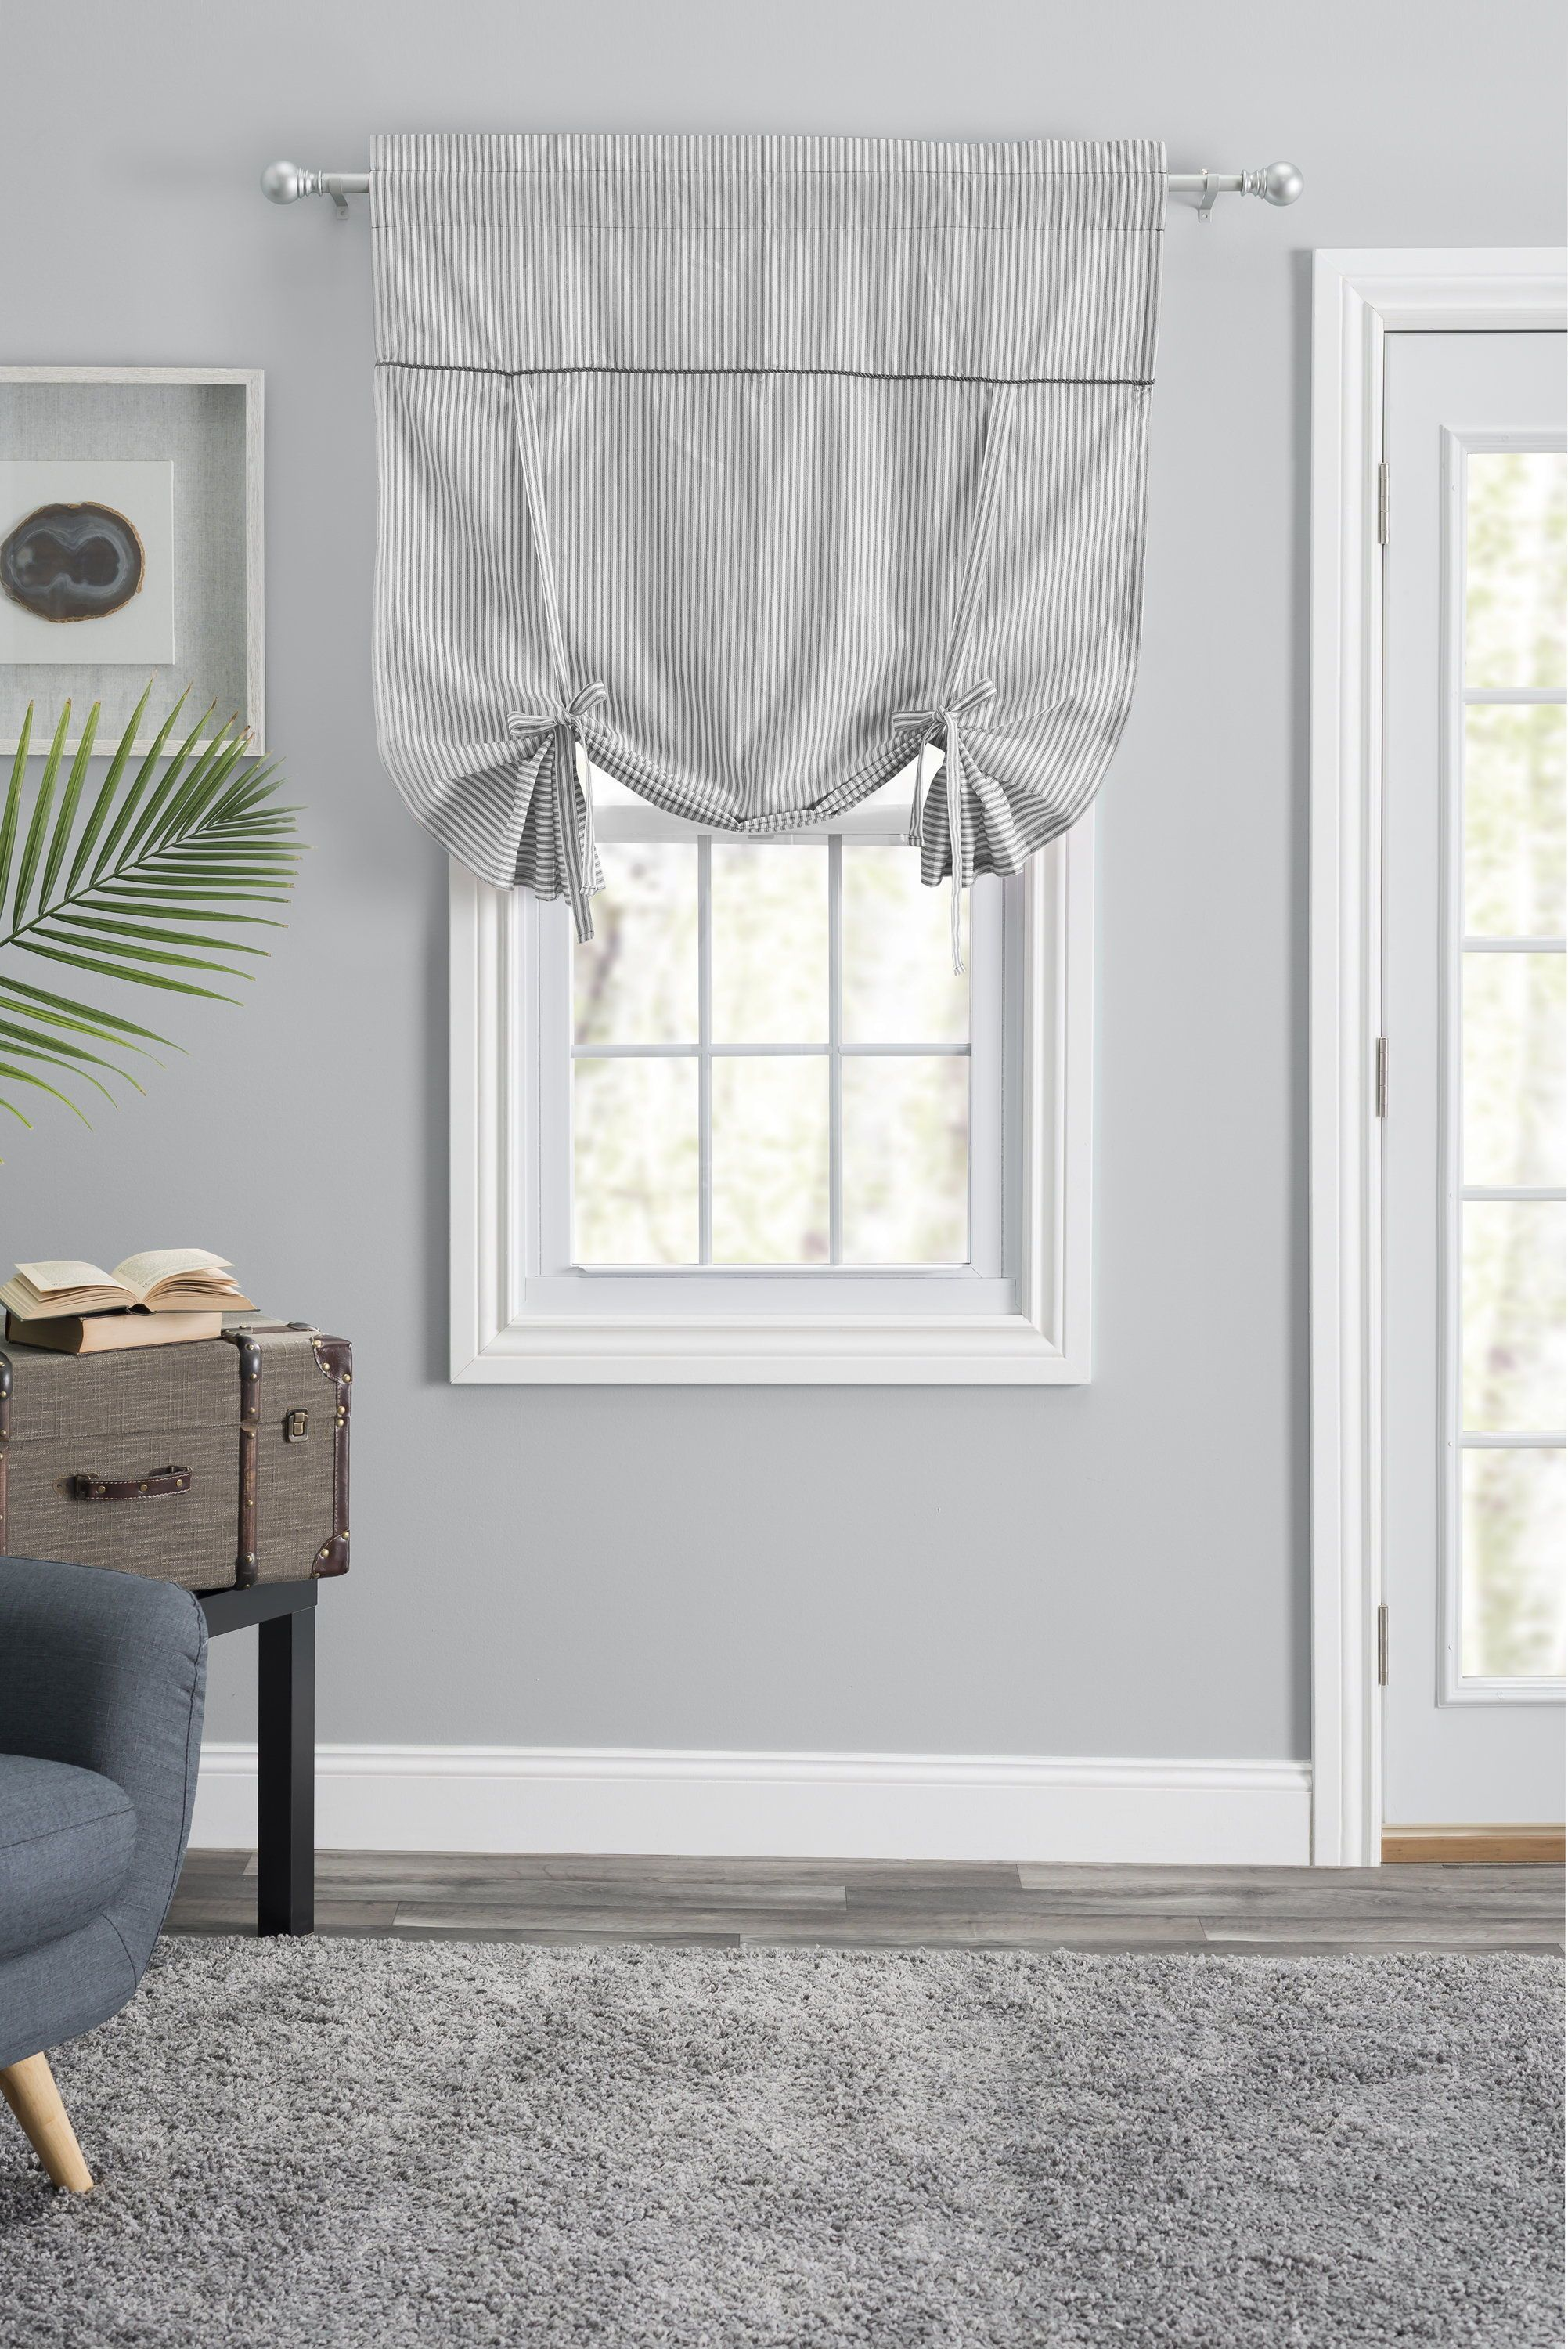 Farmhouse Valances Rustic Valances Tie Up Shades Mattress Furniture Curtains